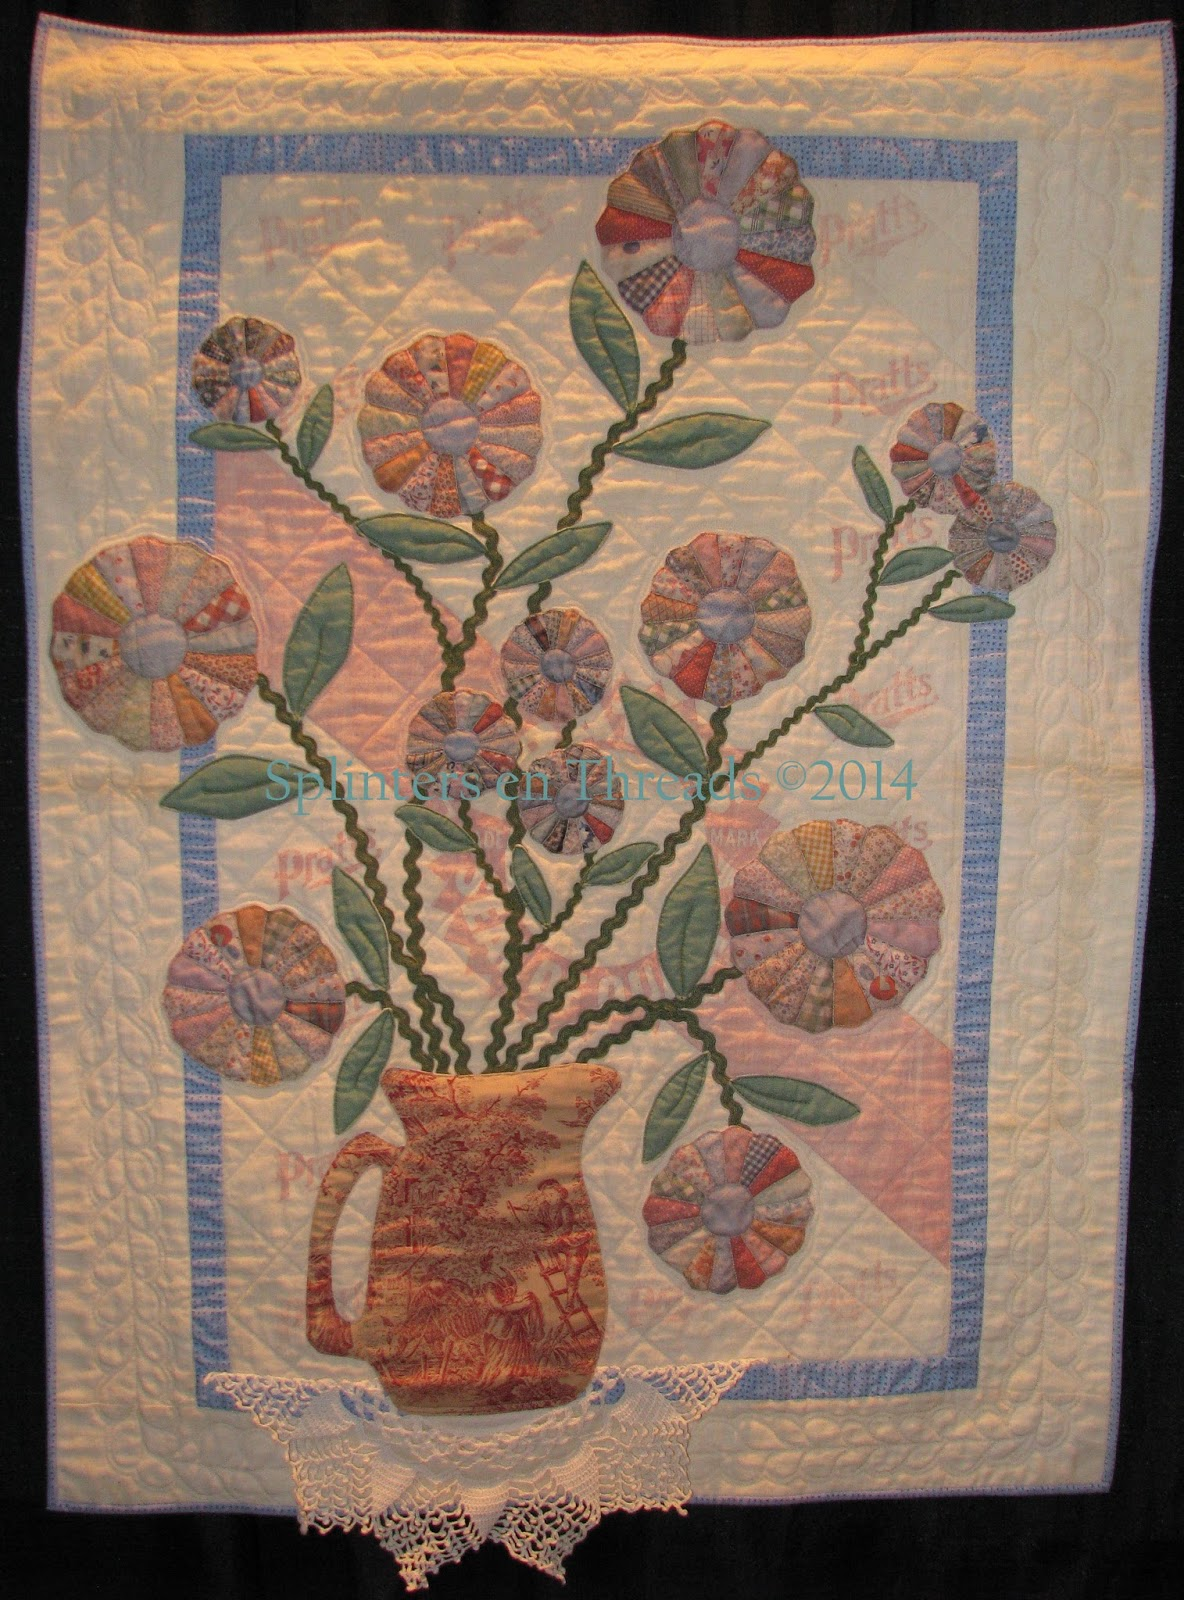 http://www.americanquiltstudygroup.org/qs20cstudy27.asp